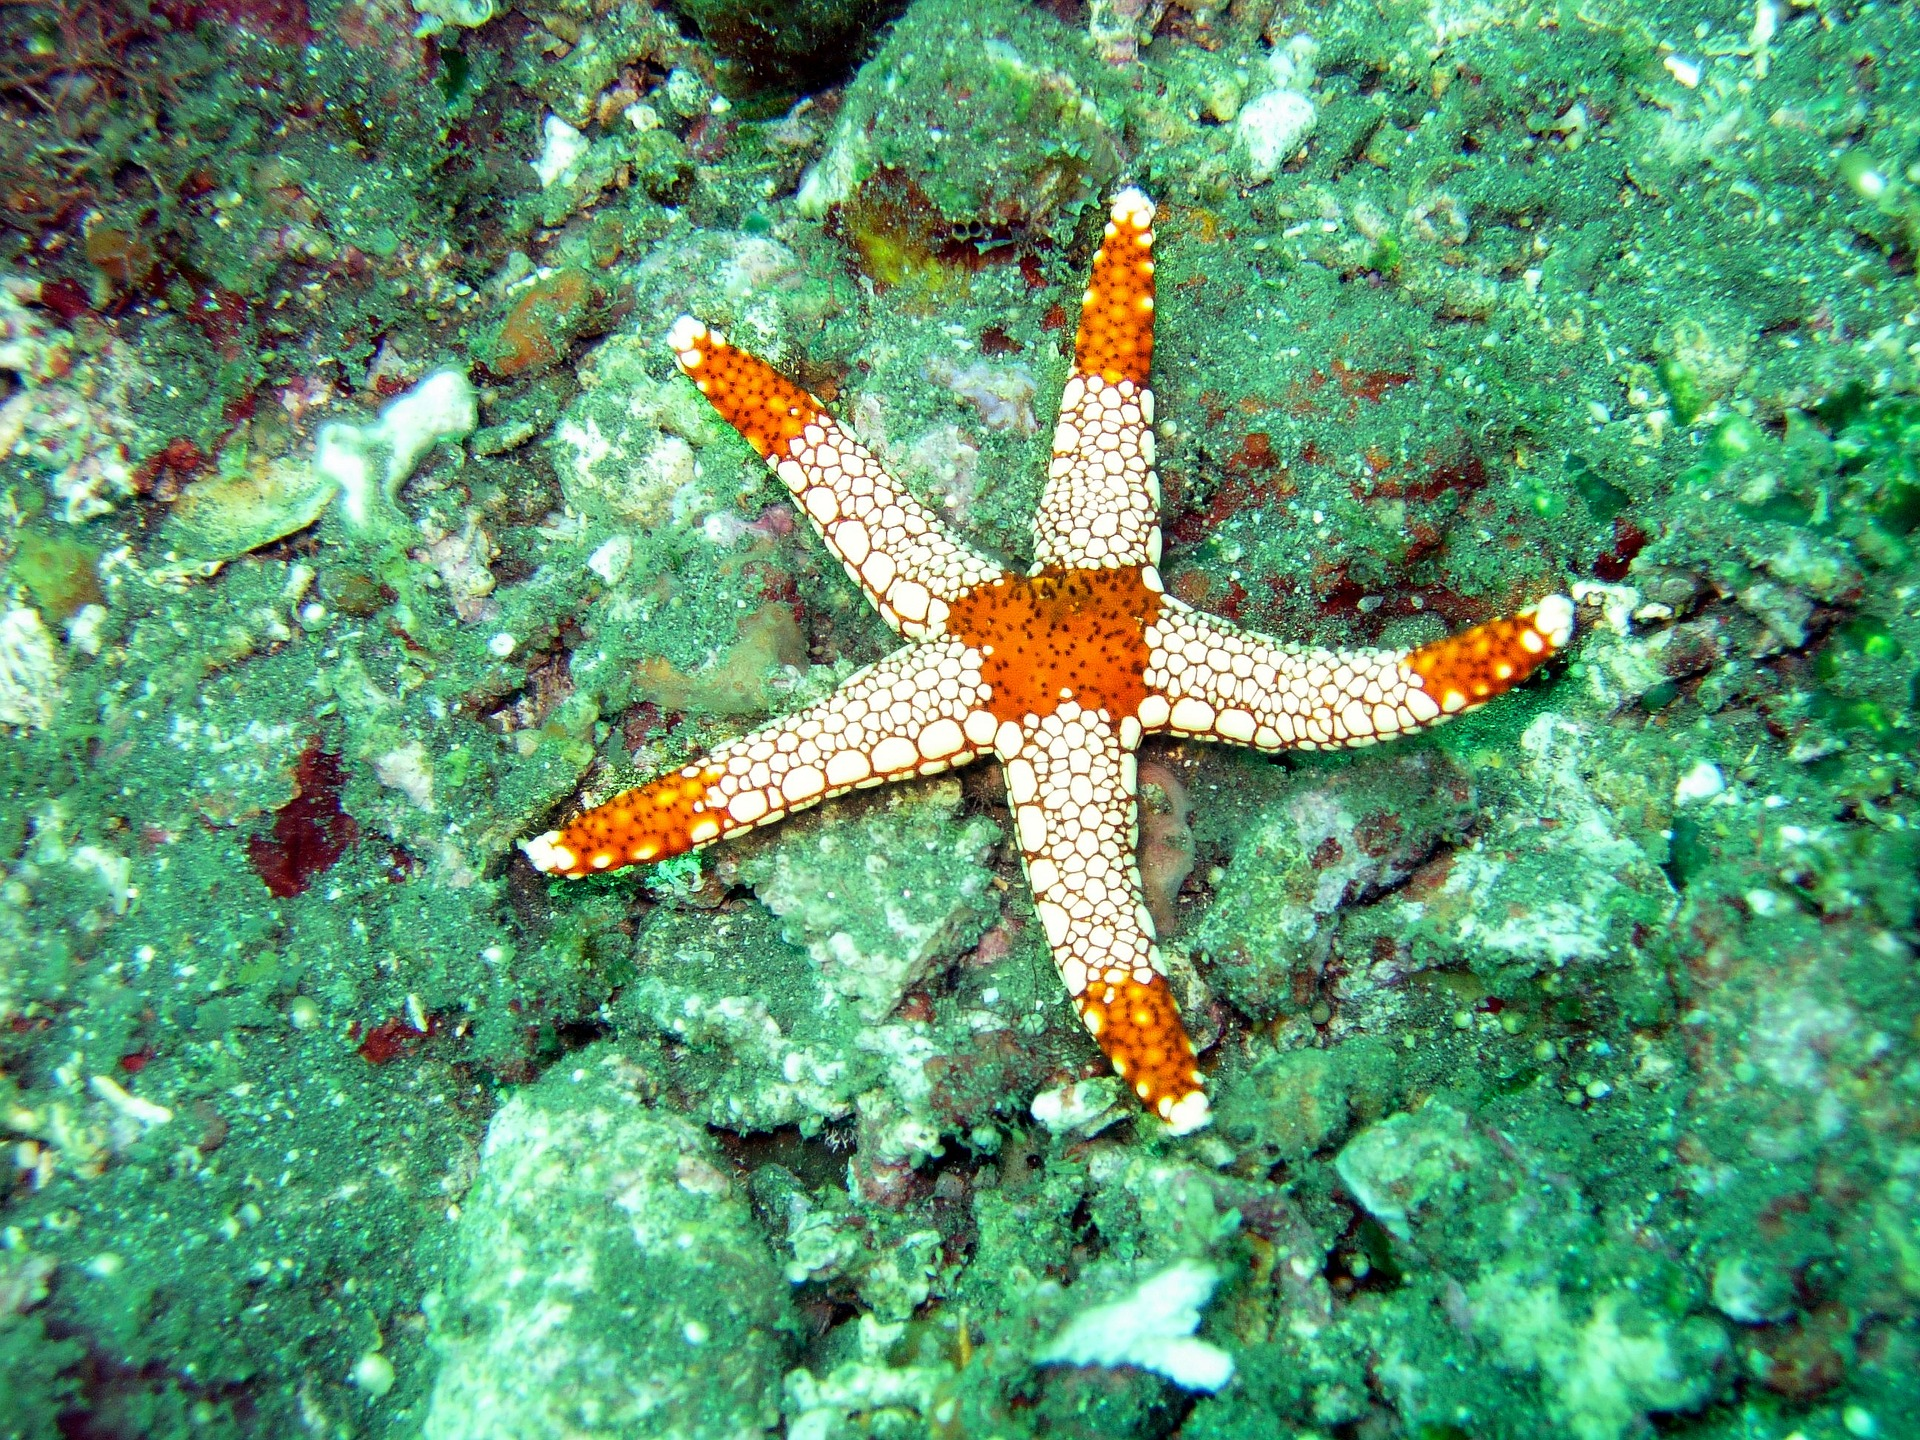 The arms of a sea star is an example of the Fibonacci sequence in nature.